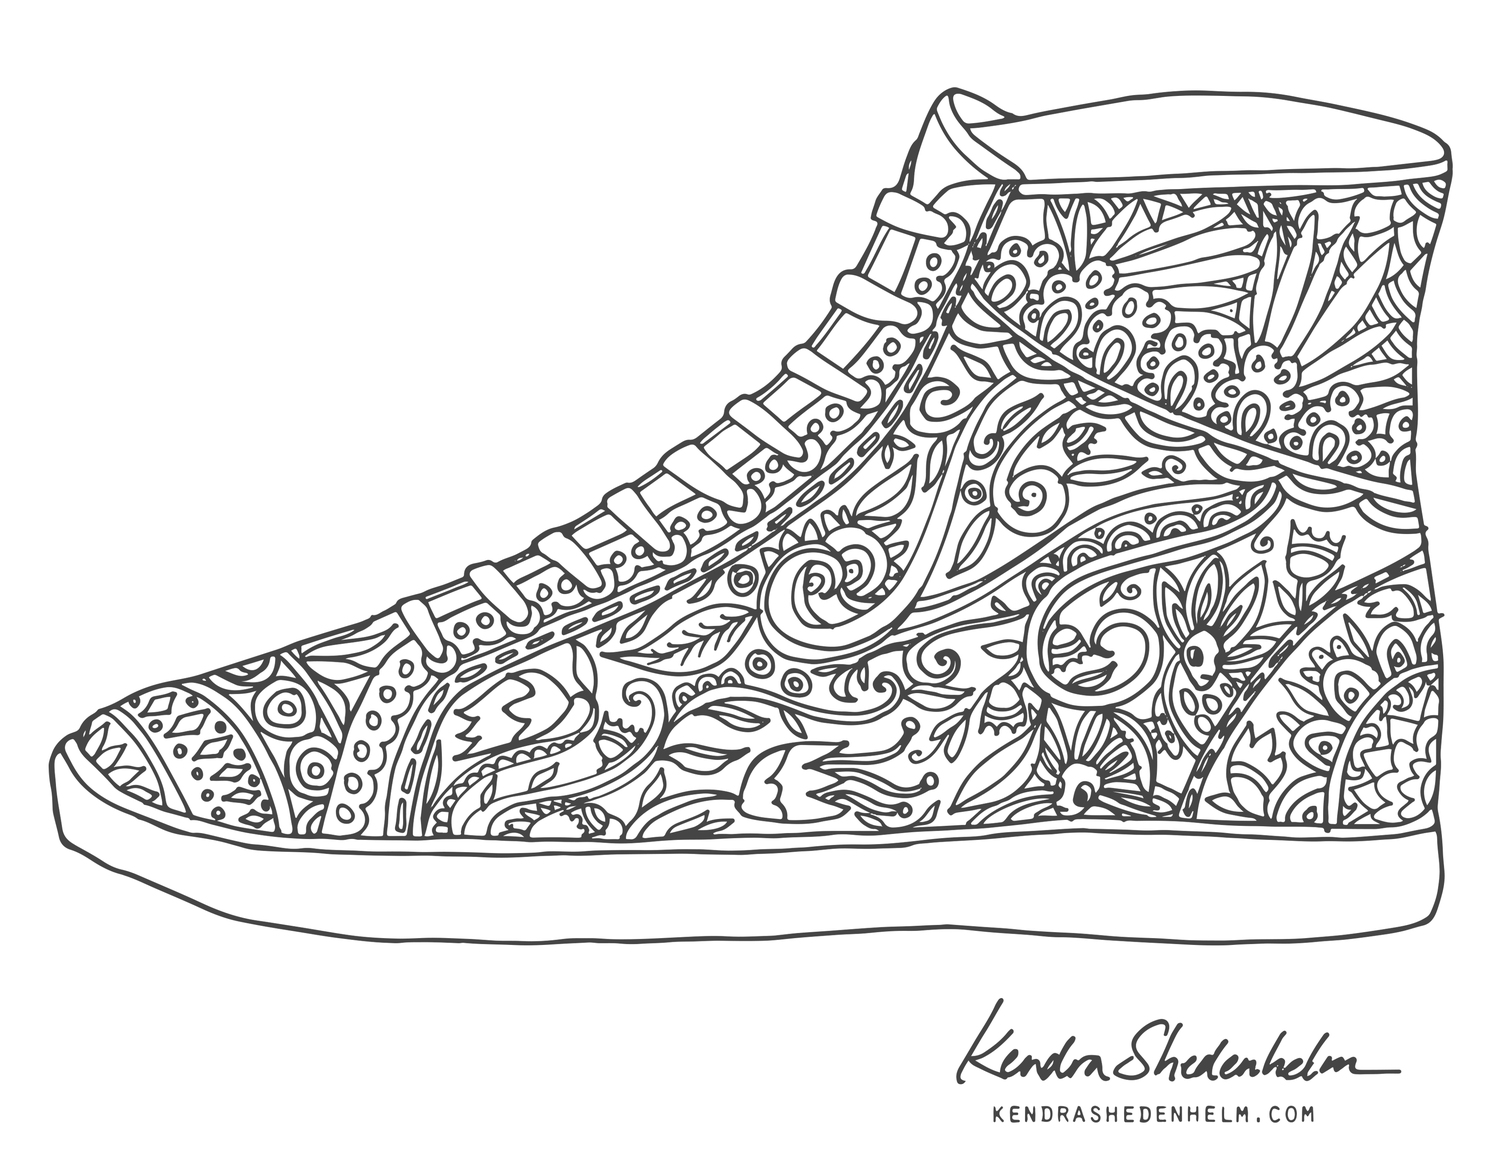 Coloring pages shoes - Kendra_shedenhelm_coloring Pages_shoe_1 Jpg